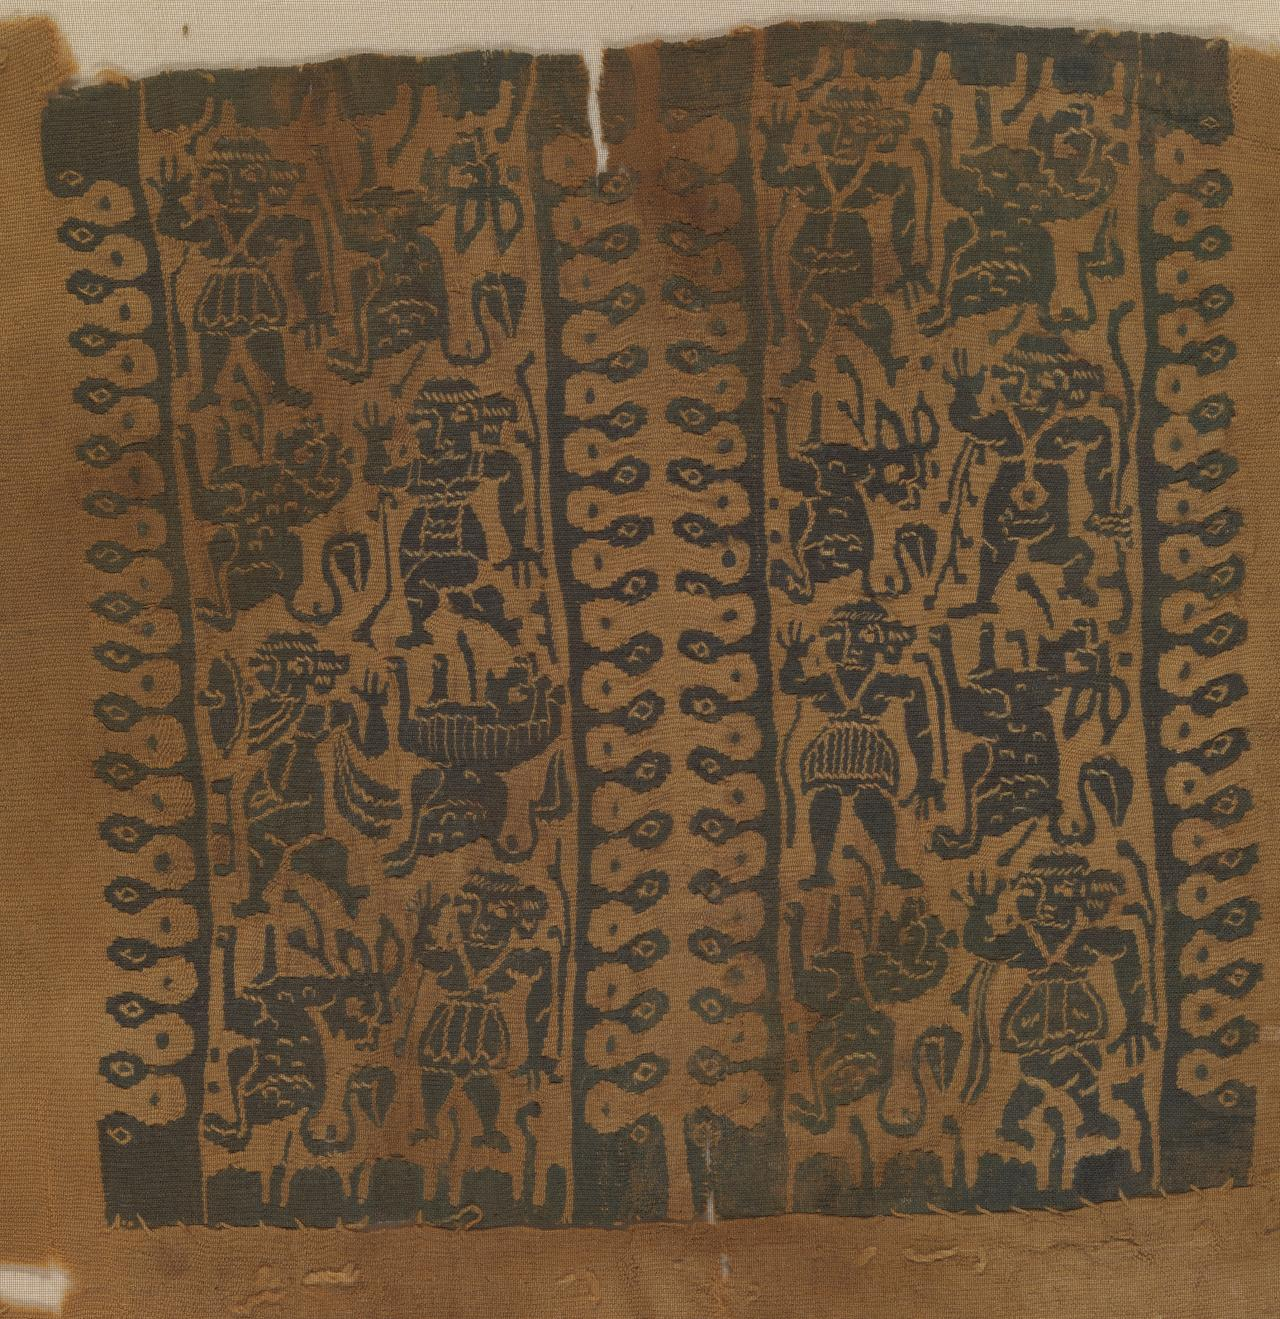 Tunic sleeve fragment with decorated insert